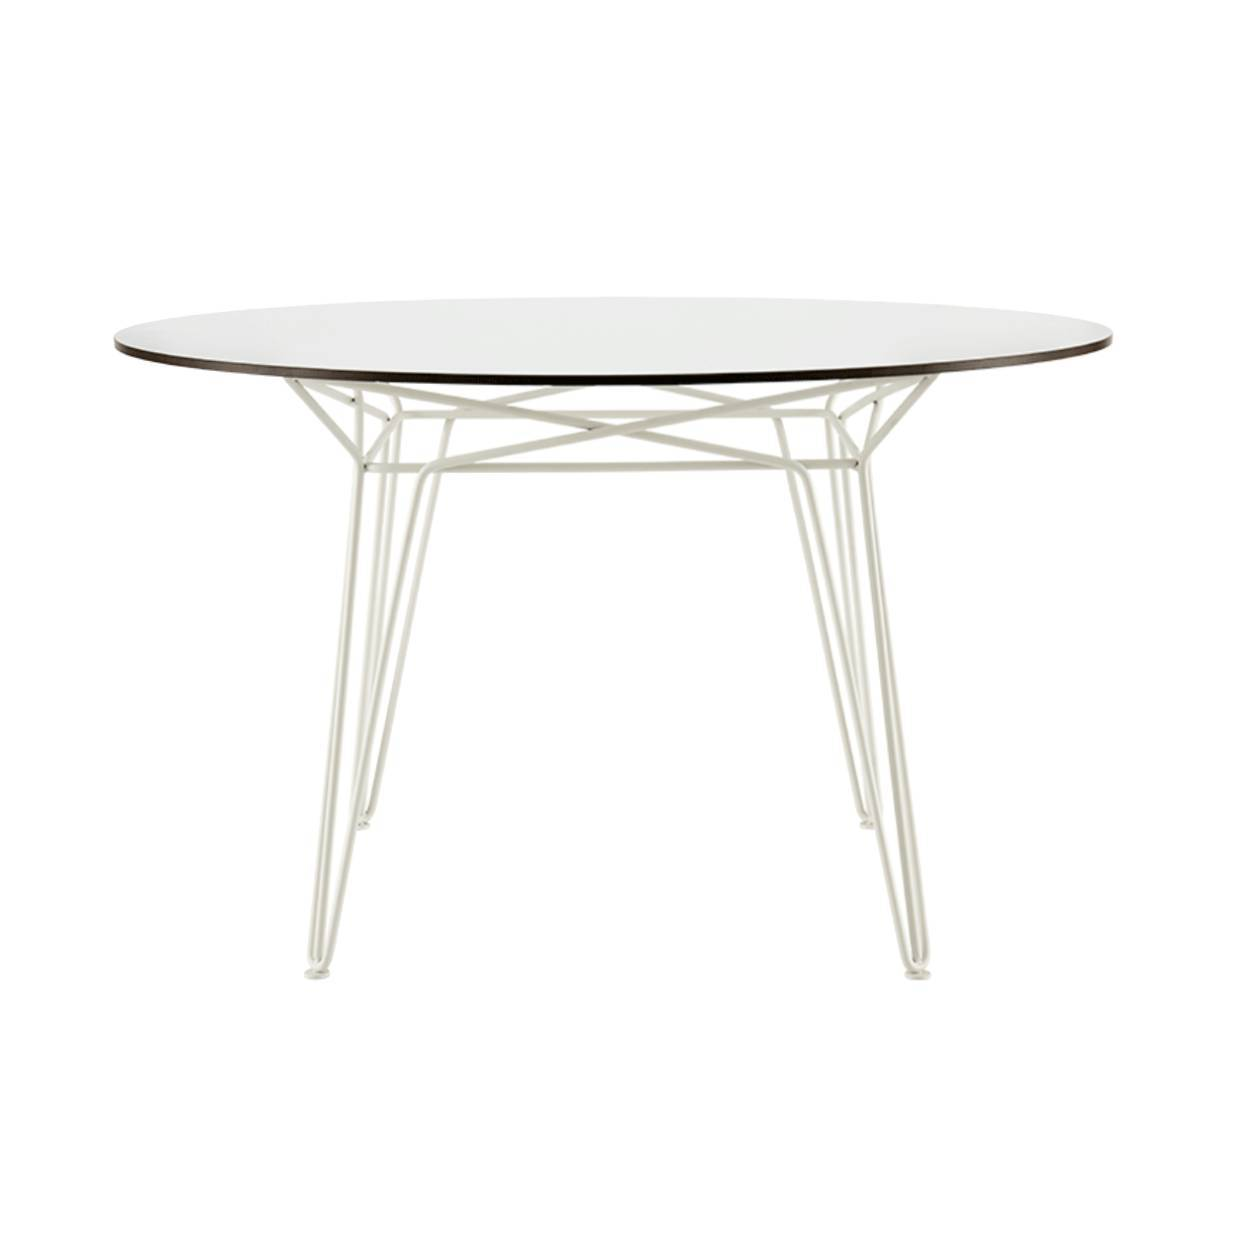 Parisi Dining Table: White + White Laminate